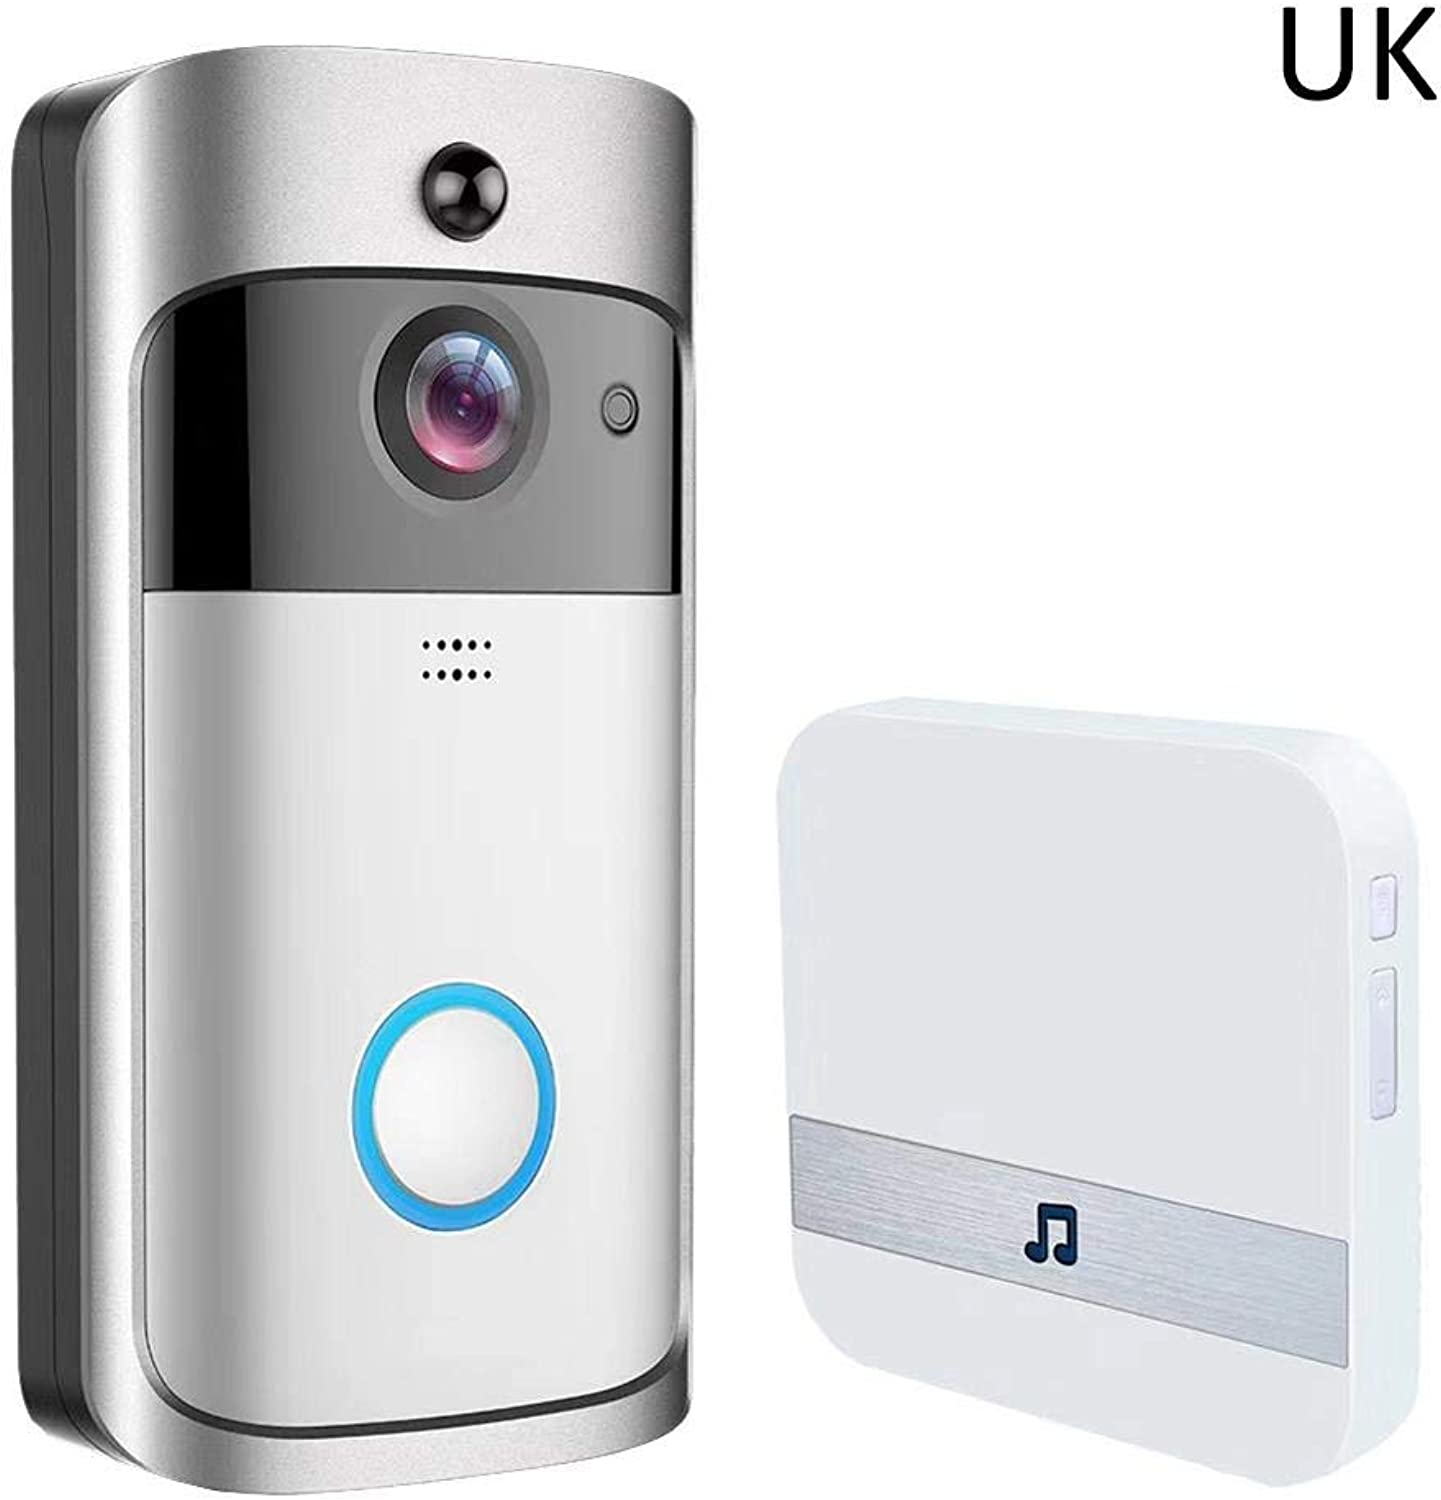 Home Video Doorbell Portable Wireless Voice Intercom Doorbell with Responser, Smart Wireless Alarm System Home Security System, Support 4 Mobile Phones to Monitor, CosyTT